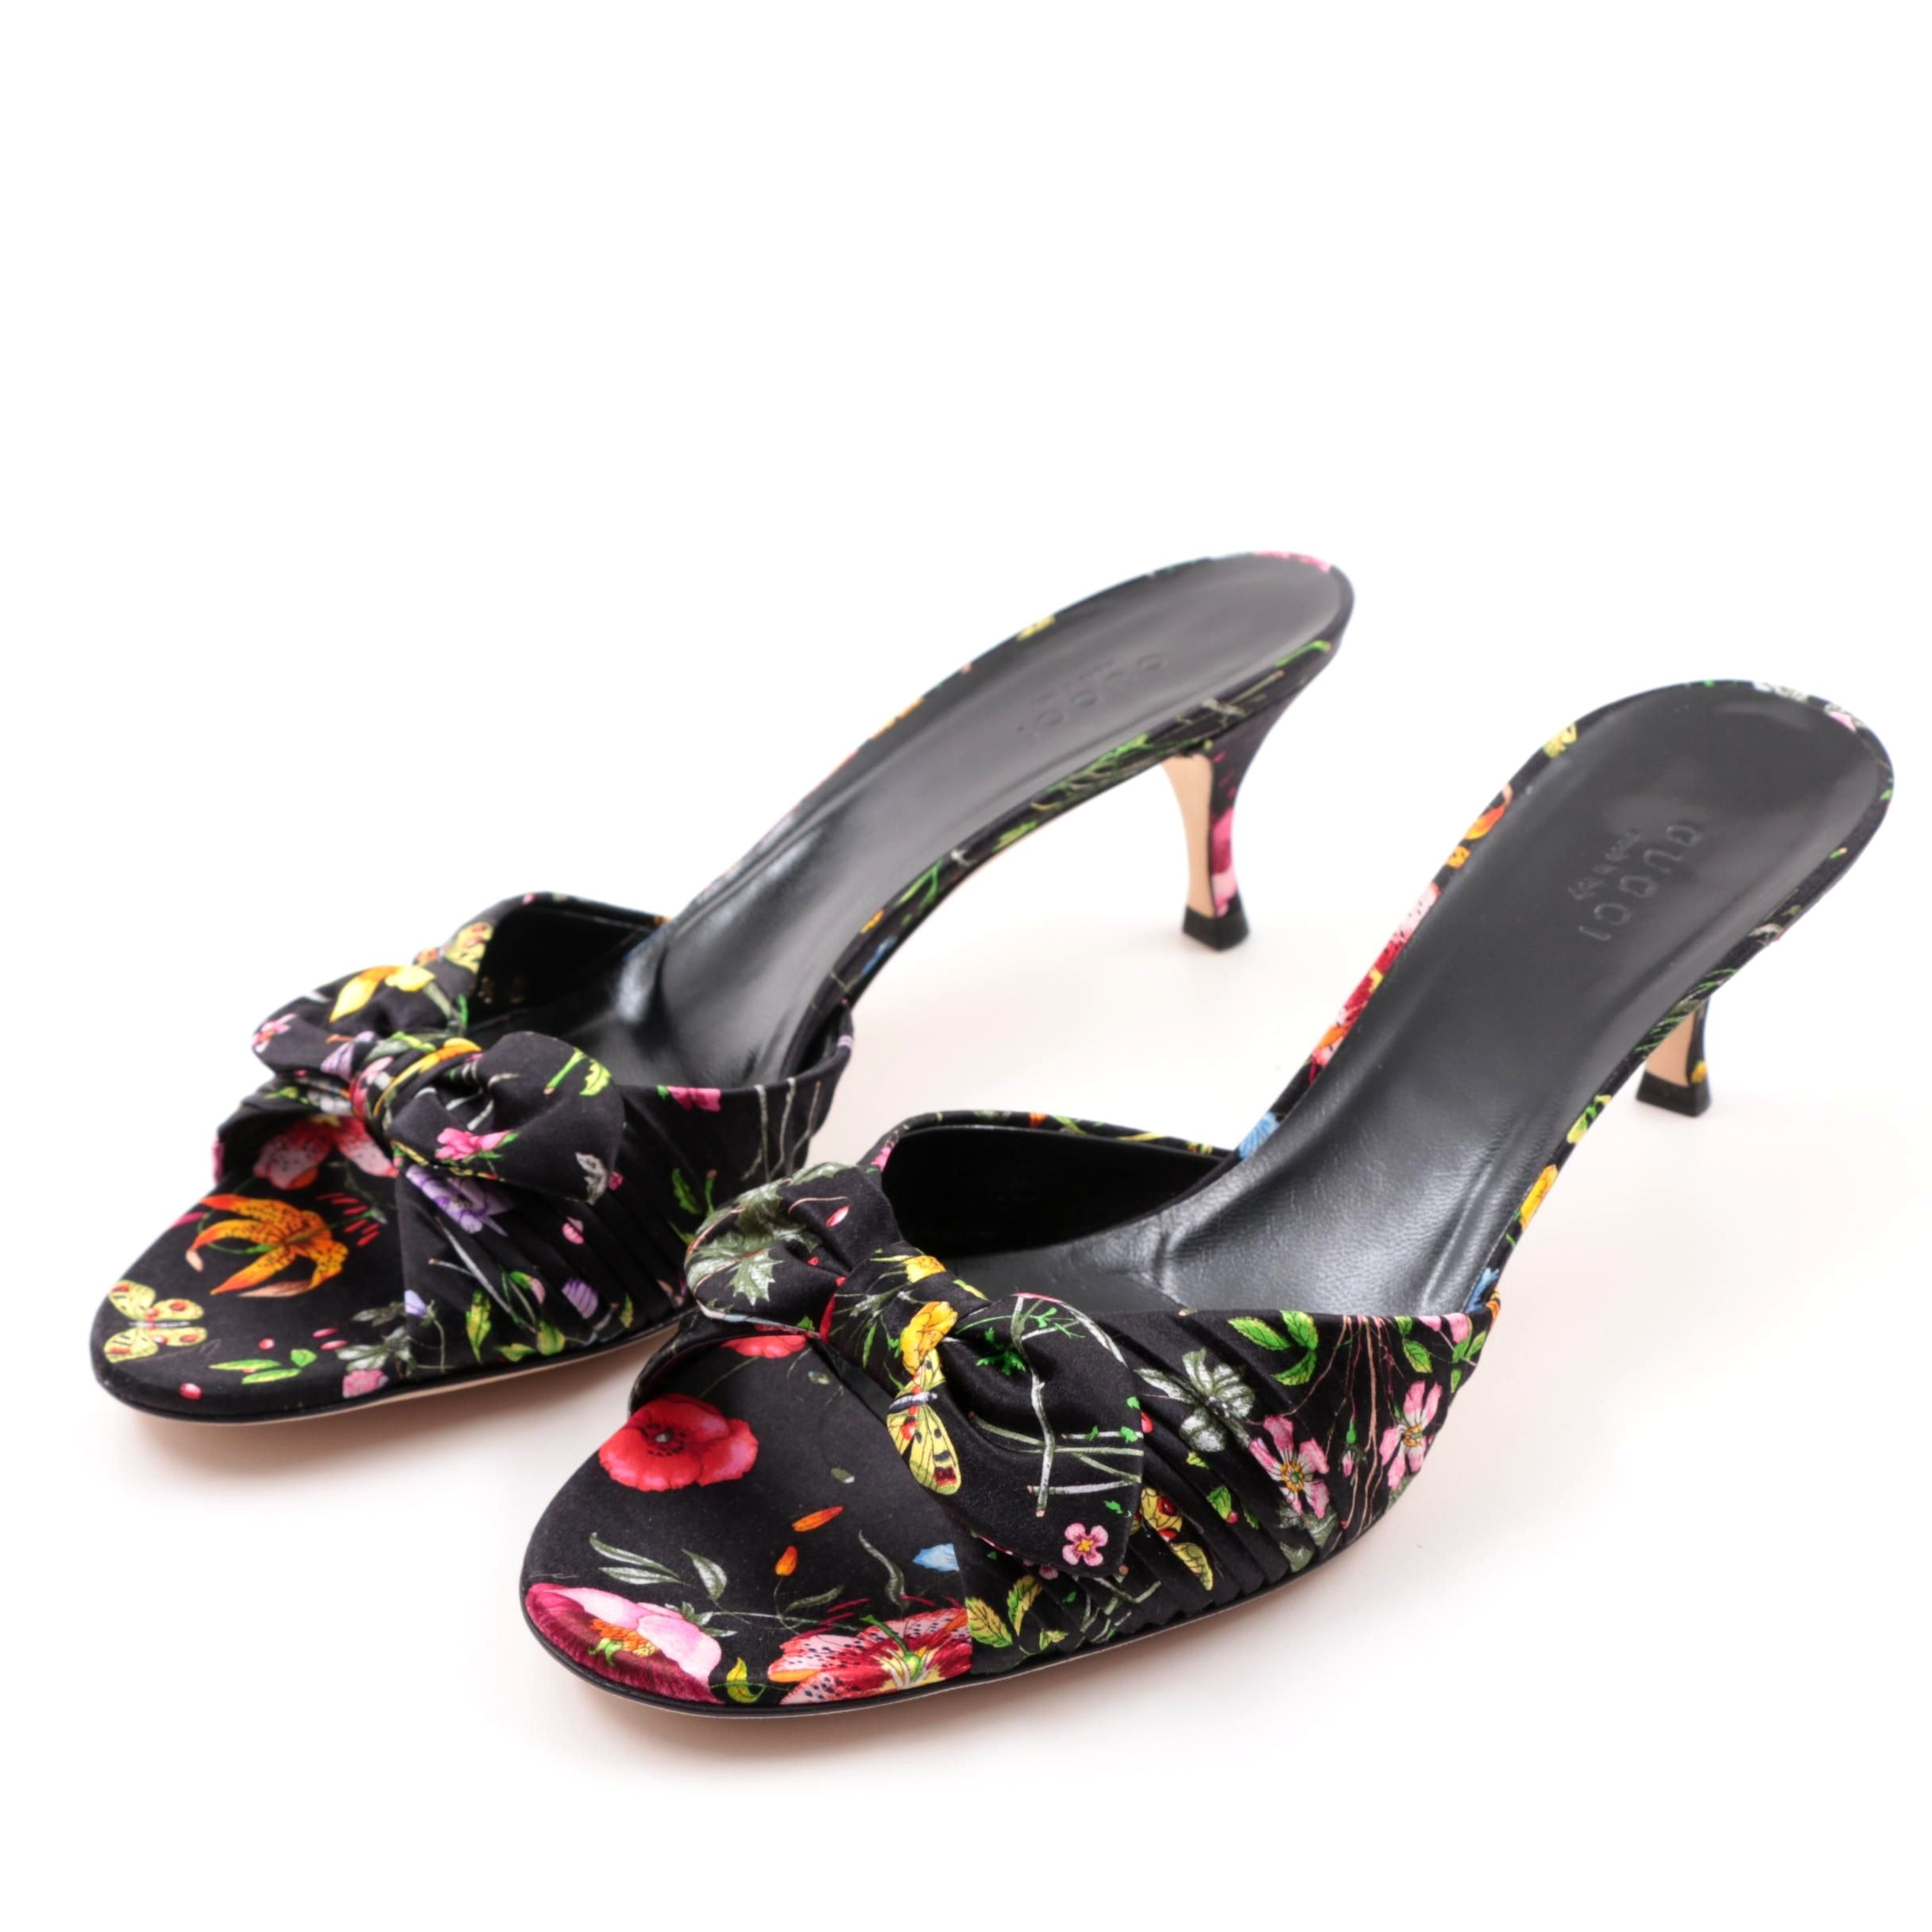 Gucci Raso Floral Nero Silk Kitten Heel Slide Sandals